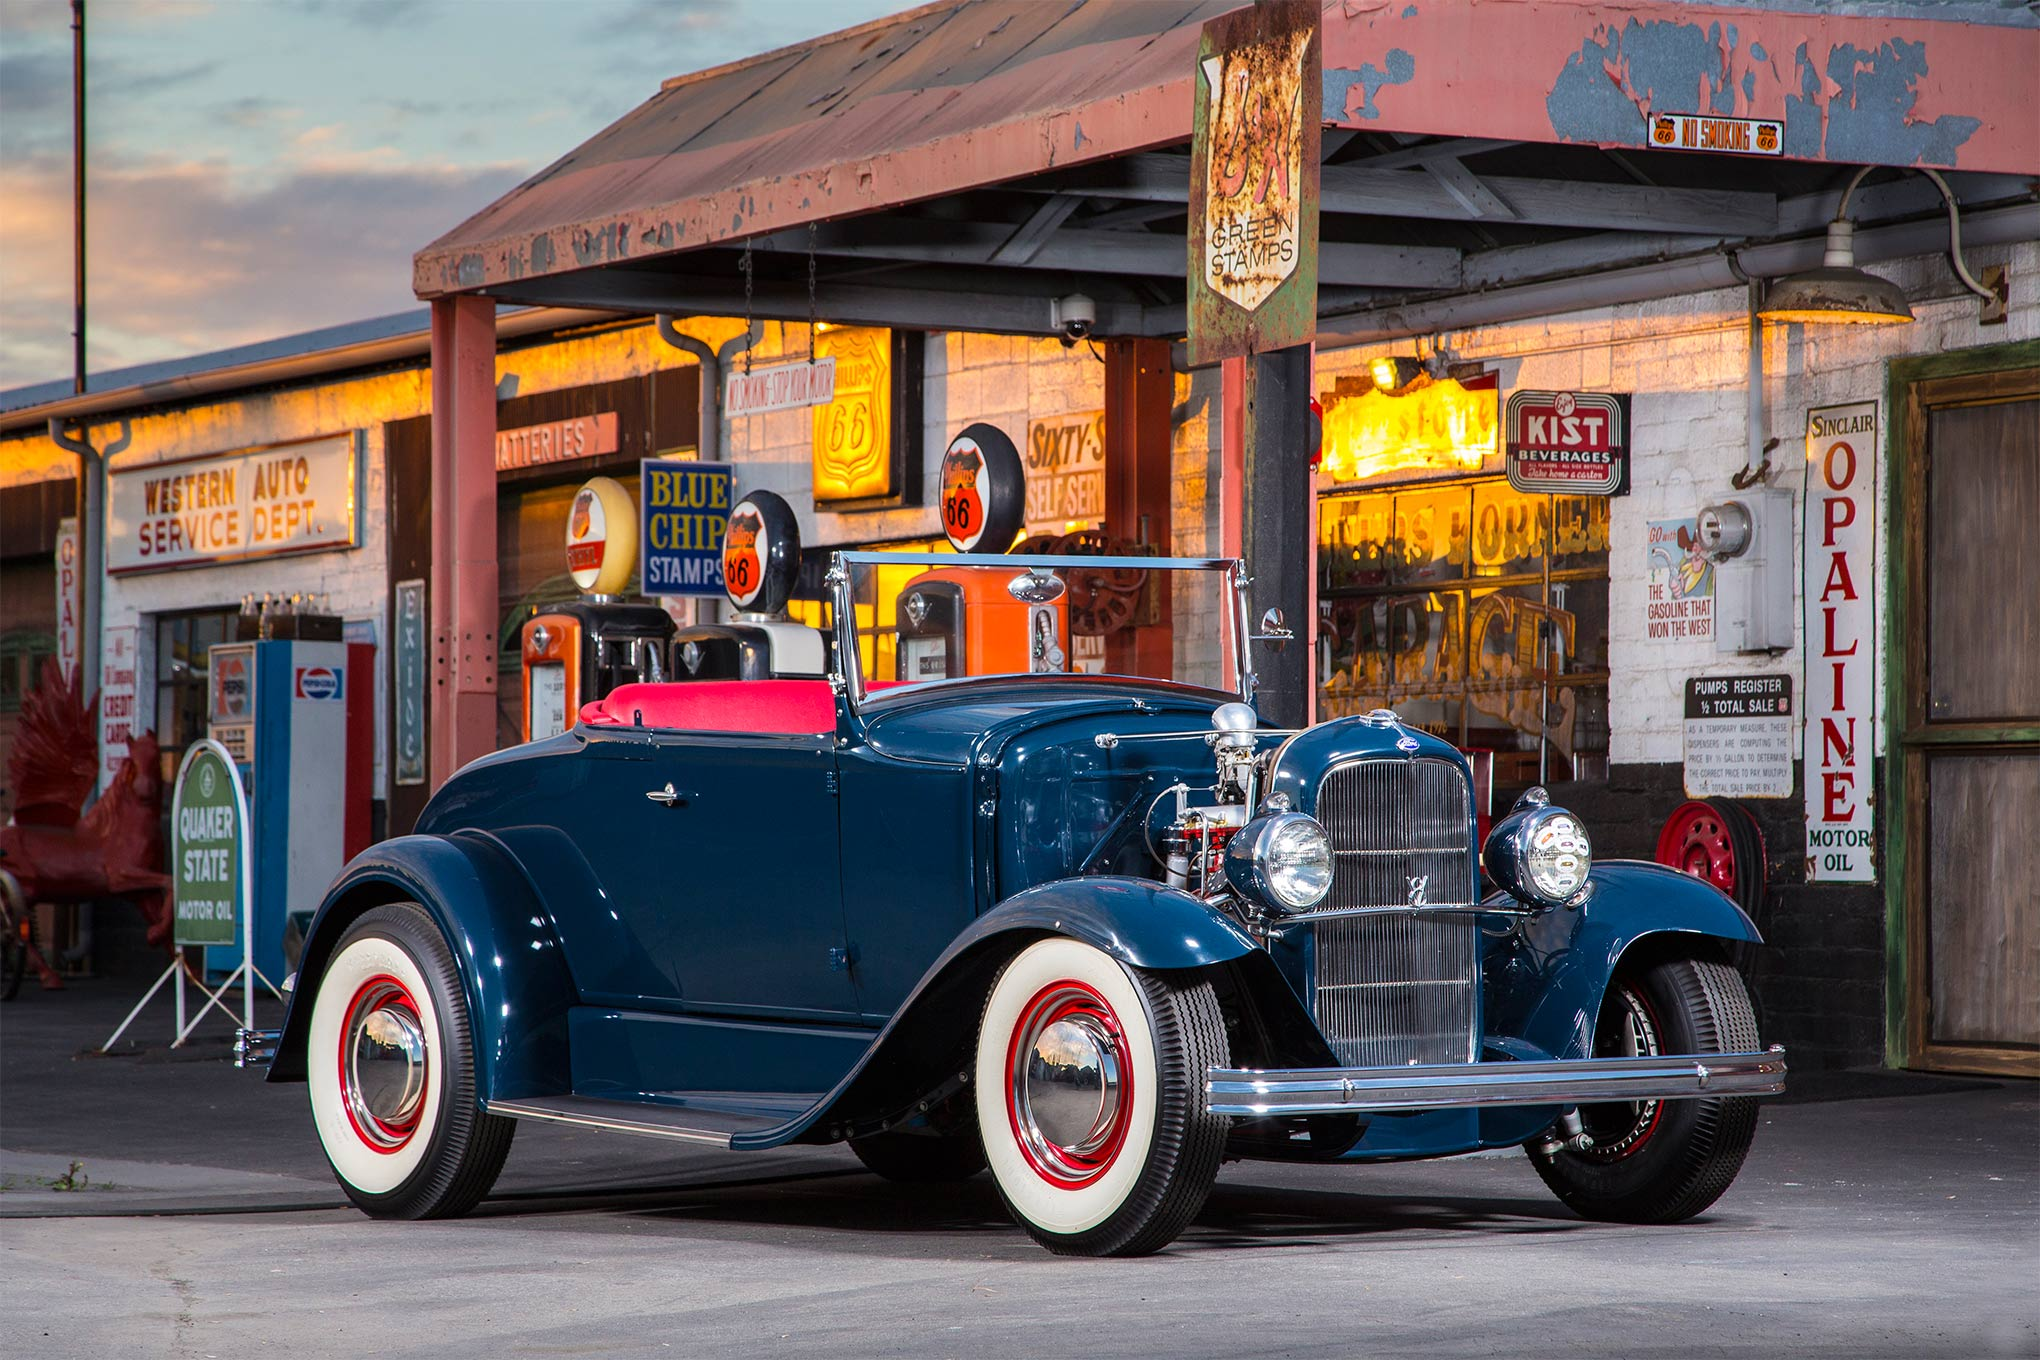 """Hot rodding can be a small world. We photographed Steve Lenain's roadster at Kasner's Korner Garage, as Bob Kasner and Steve are good friends. We appreciate Bob's hospitality, as his """"korner"""" has been the setting for two of our previous covers: Bob's historic three-window, the Bill Kelly coupe for our Jan. '16 issue, and Dennis Jones's patina-laden Model A gasser for the July '15 issue."""